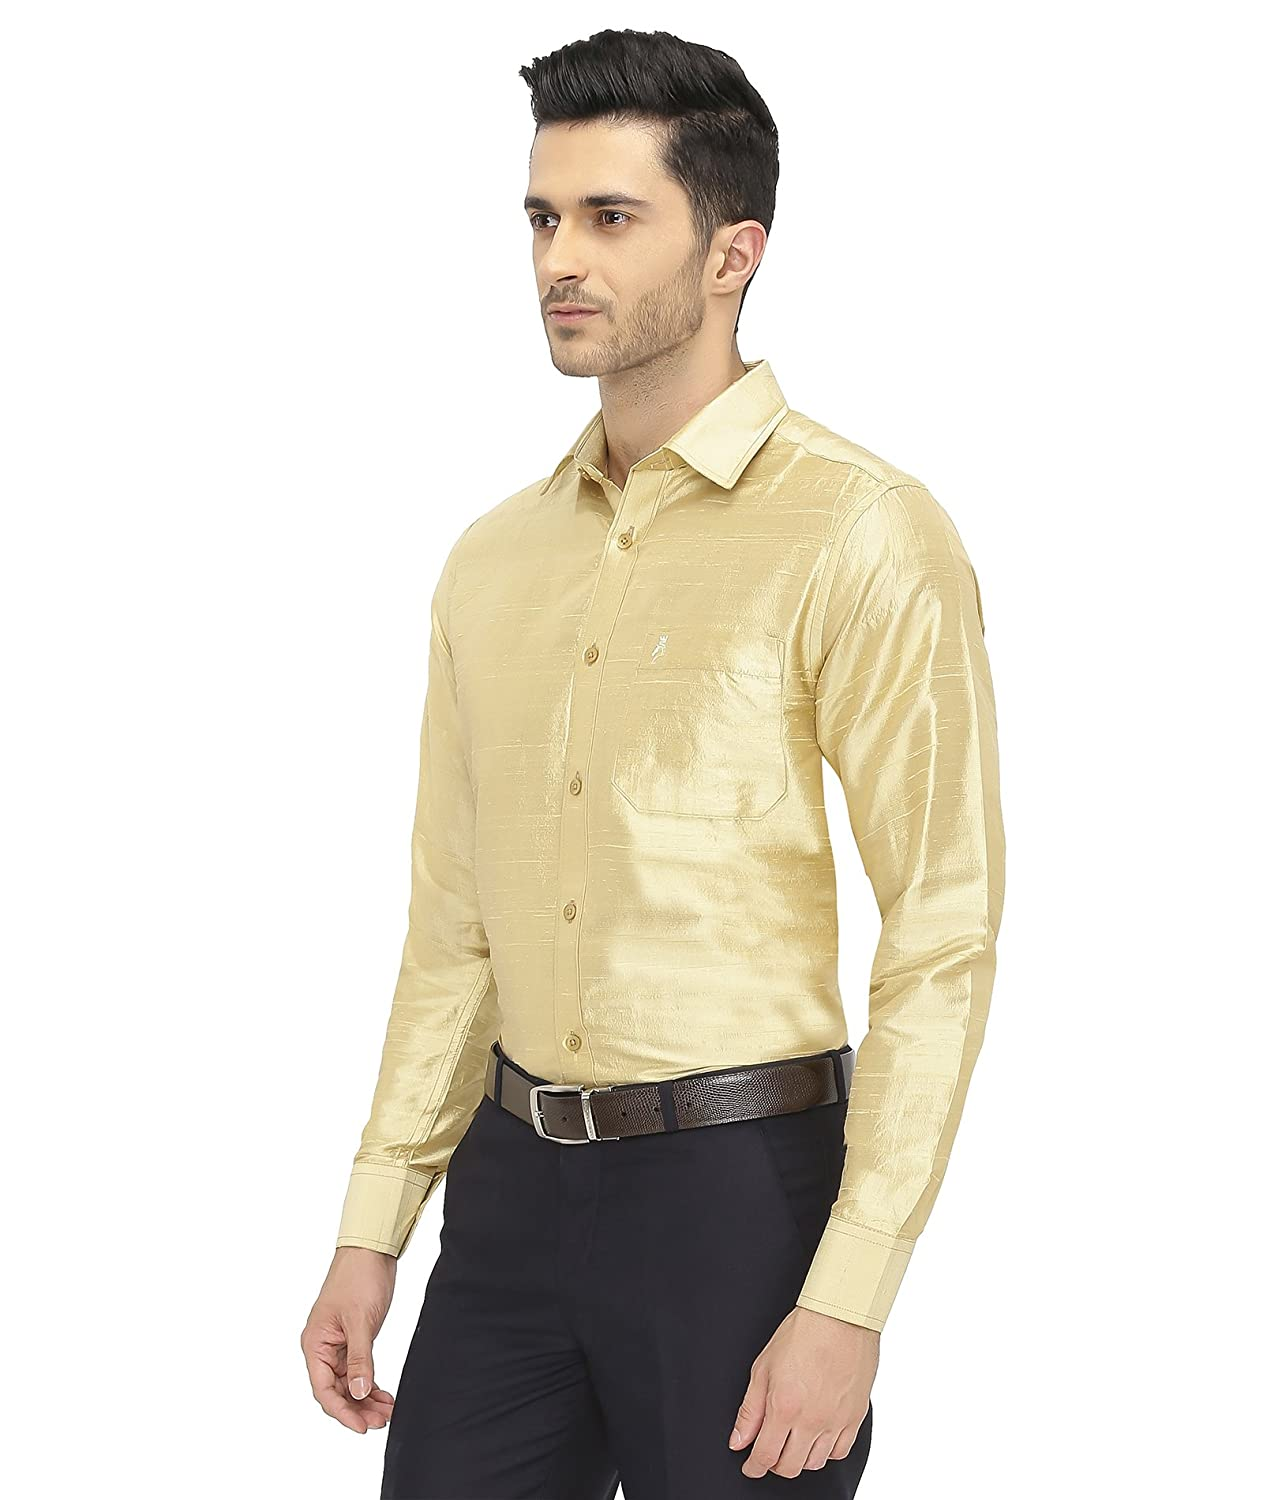 954b7afad7ca1 Khoday Williams Mens Full Sleeve Shirt - Slub Silk Dupion Material - Shirt  Collar - Golden Colour - Mens Full Sleeve Shirt - Slub Silk Dupion  Material  ...